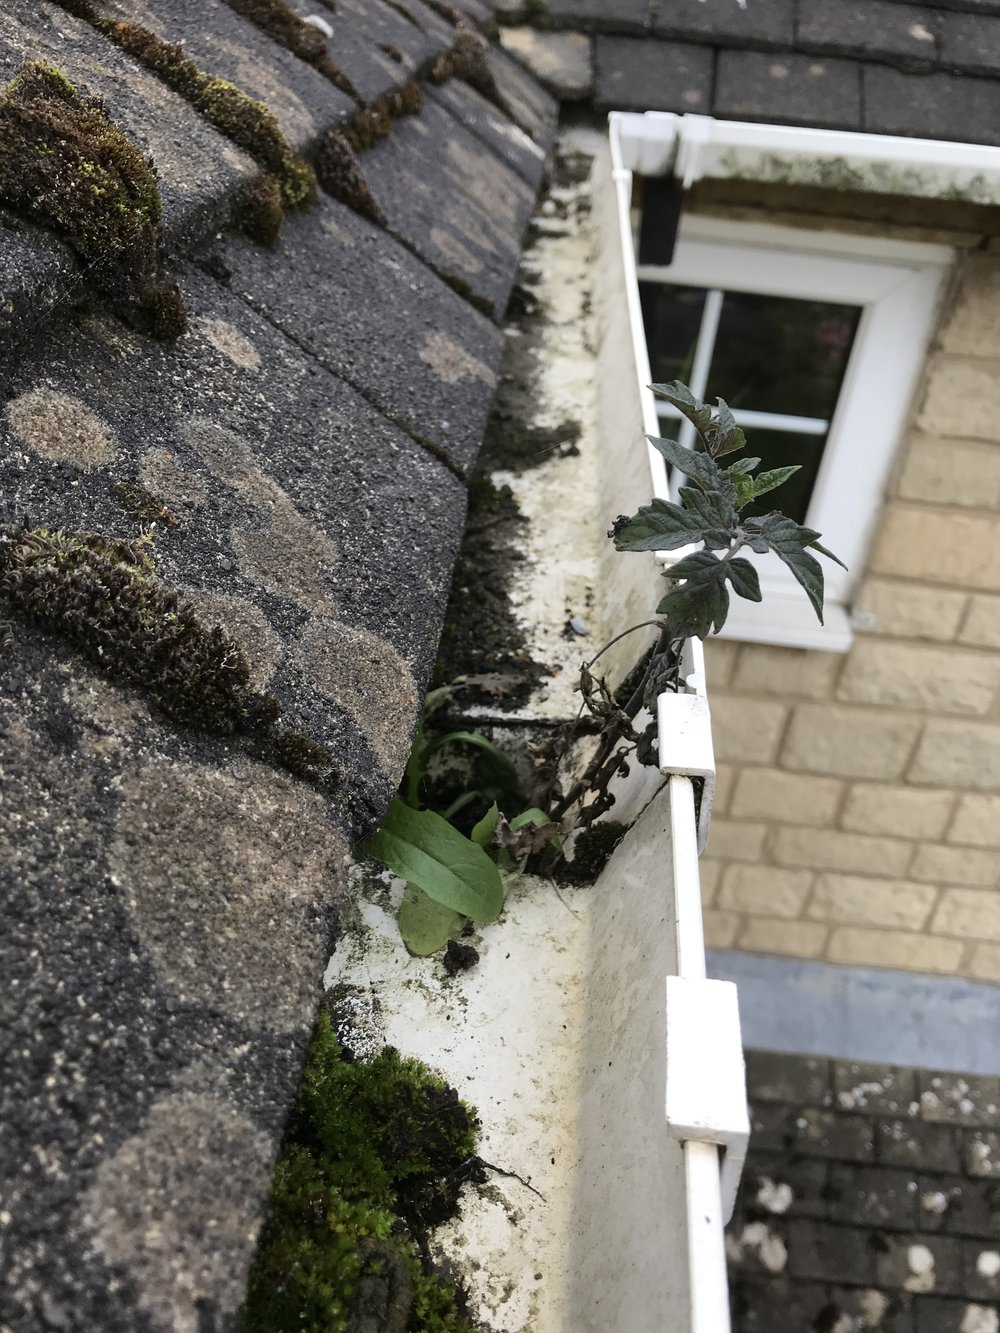 Weeds growing from blocked downpipe